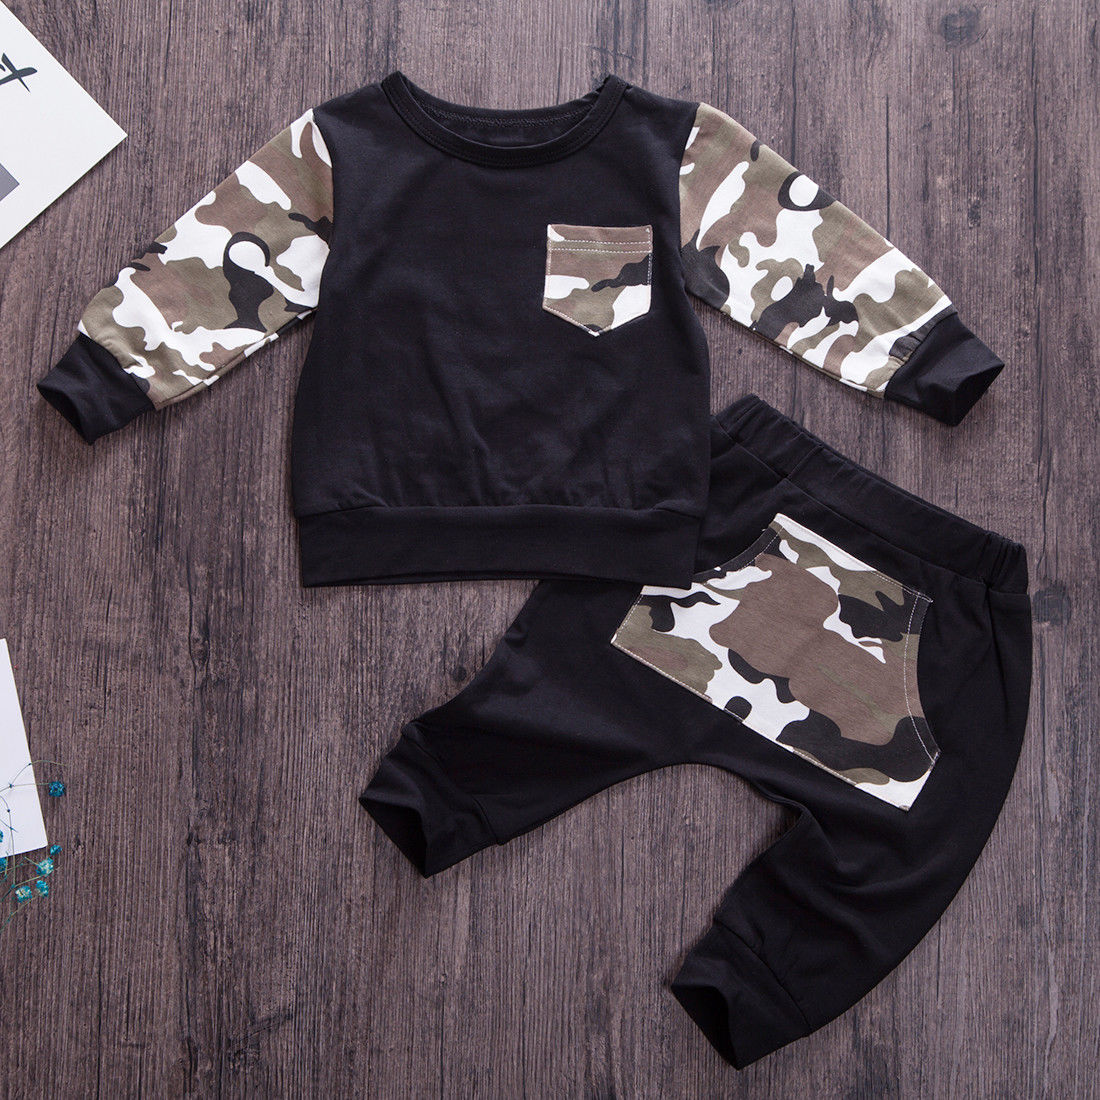 Baby Boys Camo Clothes set Newborn Long Sleeve Tops T-Shirt Pants Outfits Autumn Spring Clothing